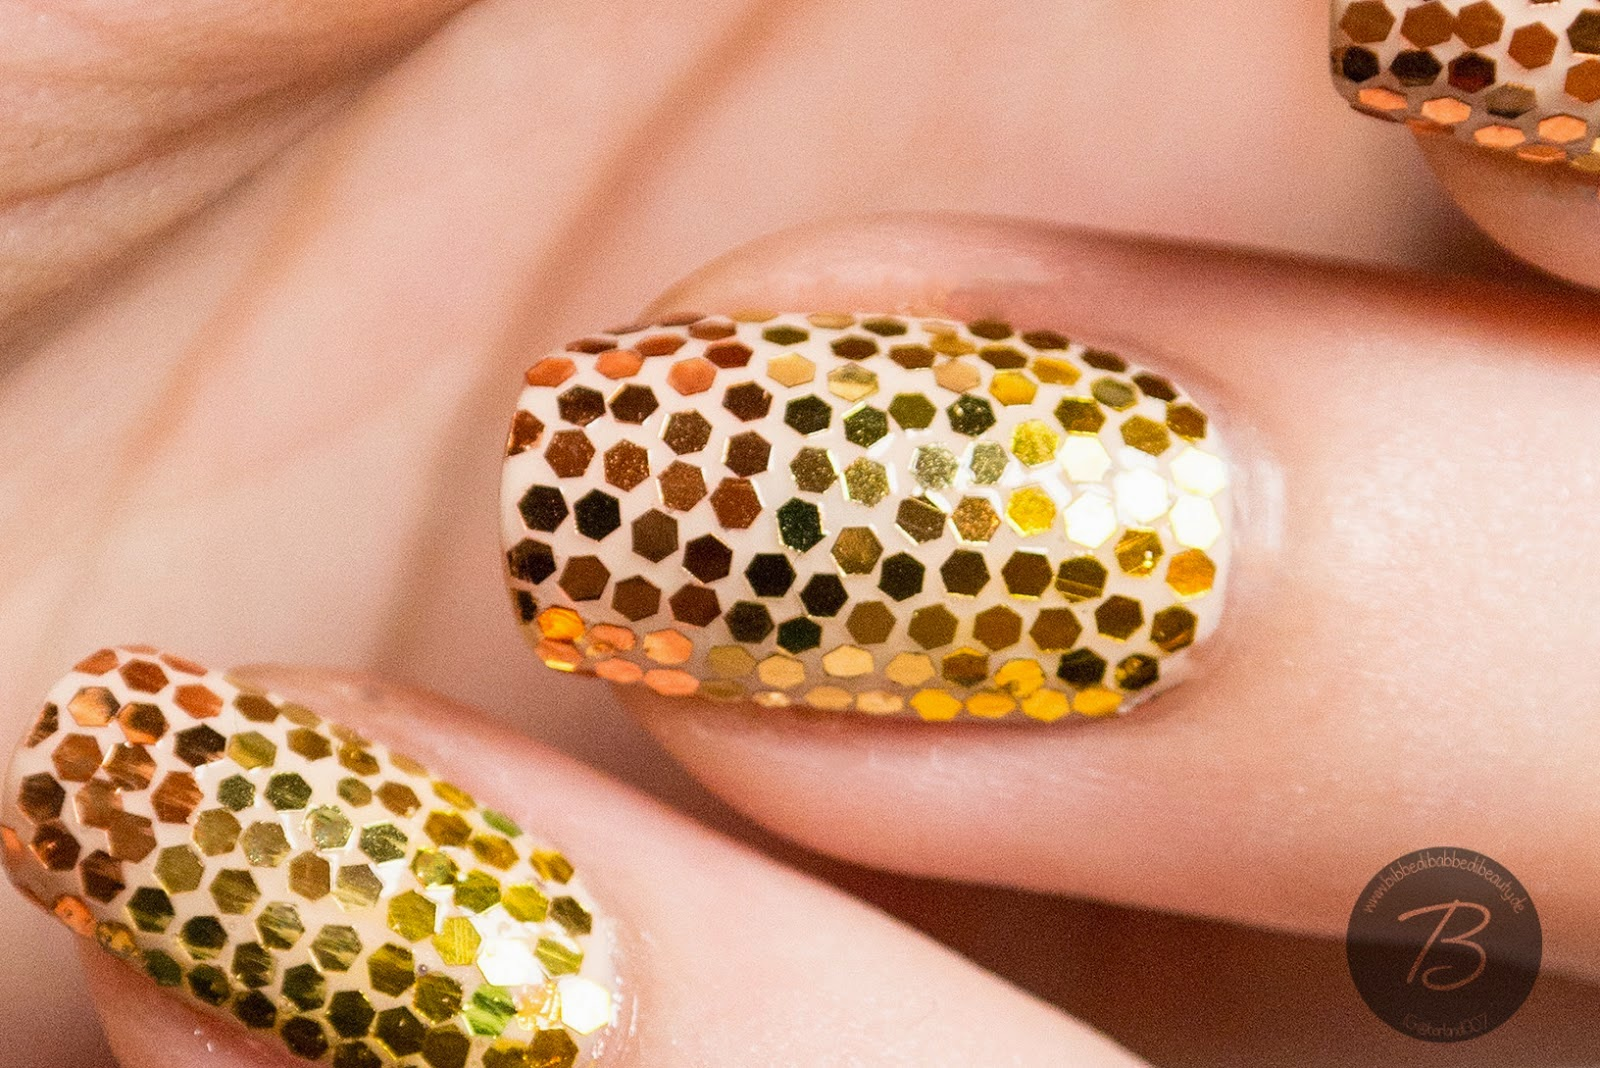 August Amazing Nail Designs Show